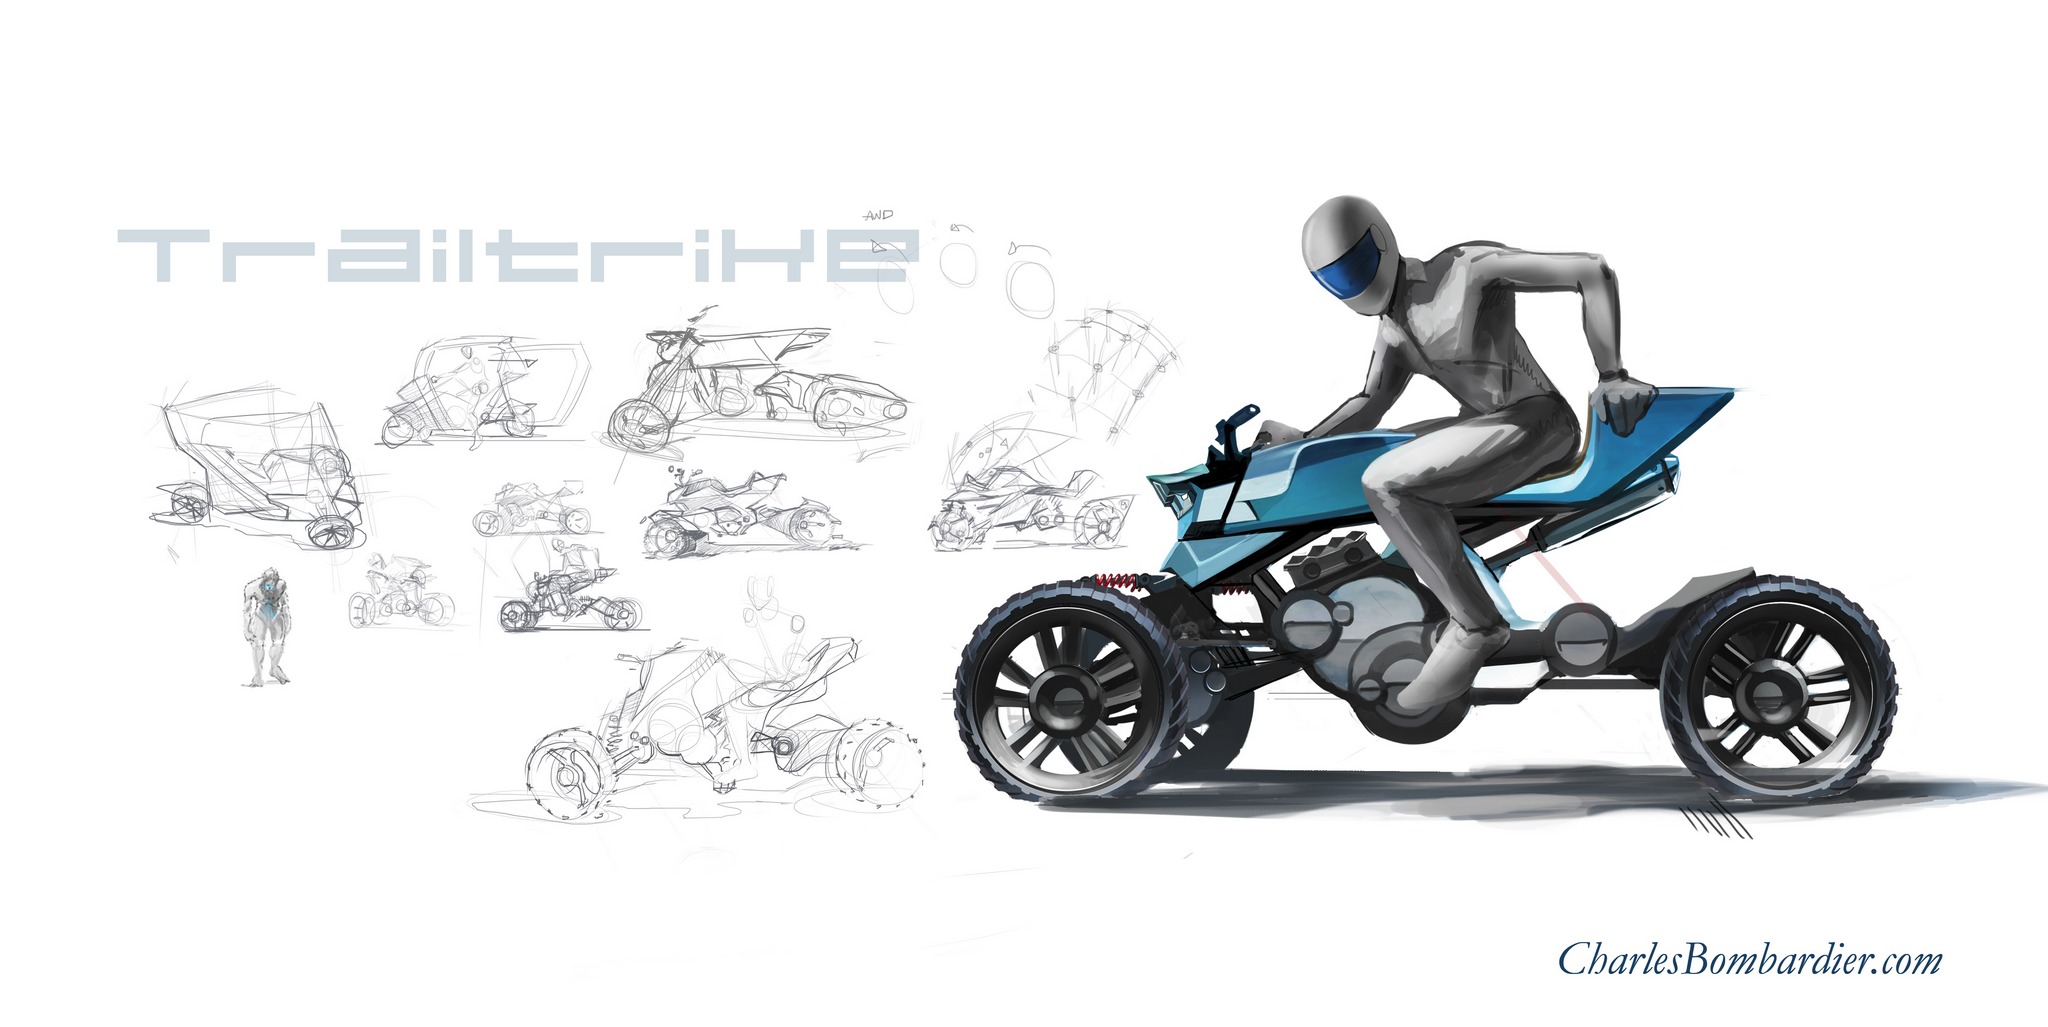 hallelujah  may off-road trikes become real